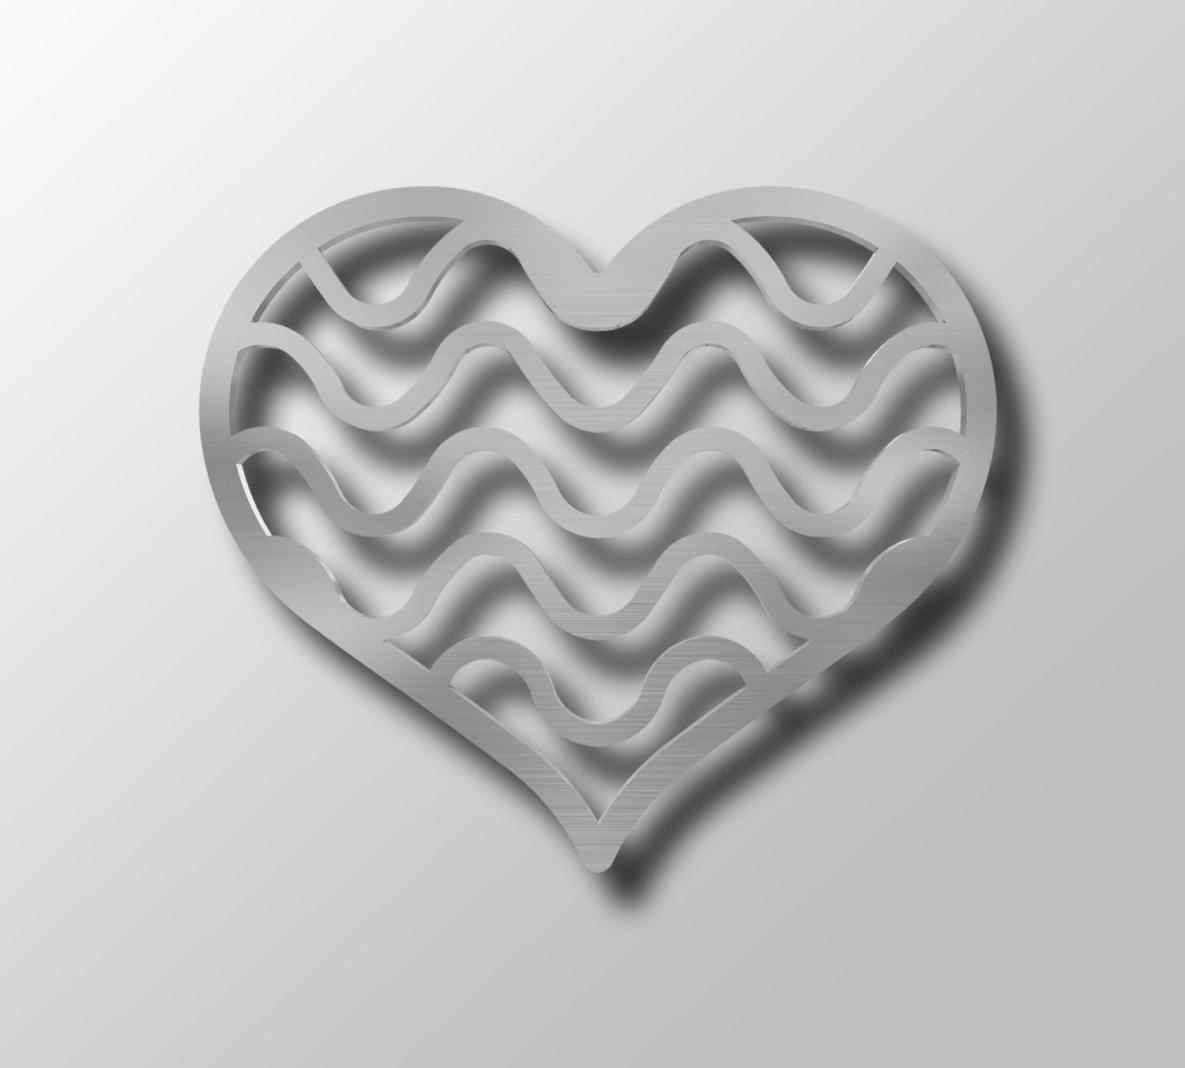 Of My Heart Shaped Metal Wall Art Sculpture Elegant In Ikea Canvas intended for Most Popular Heart Shaped Metal Wall Art